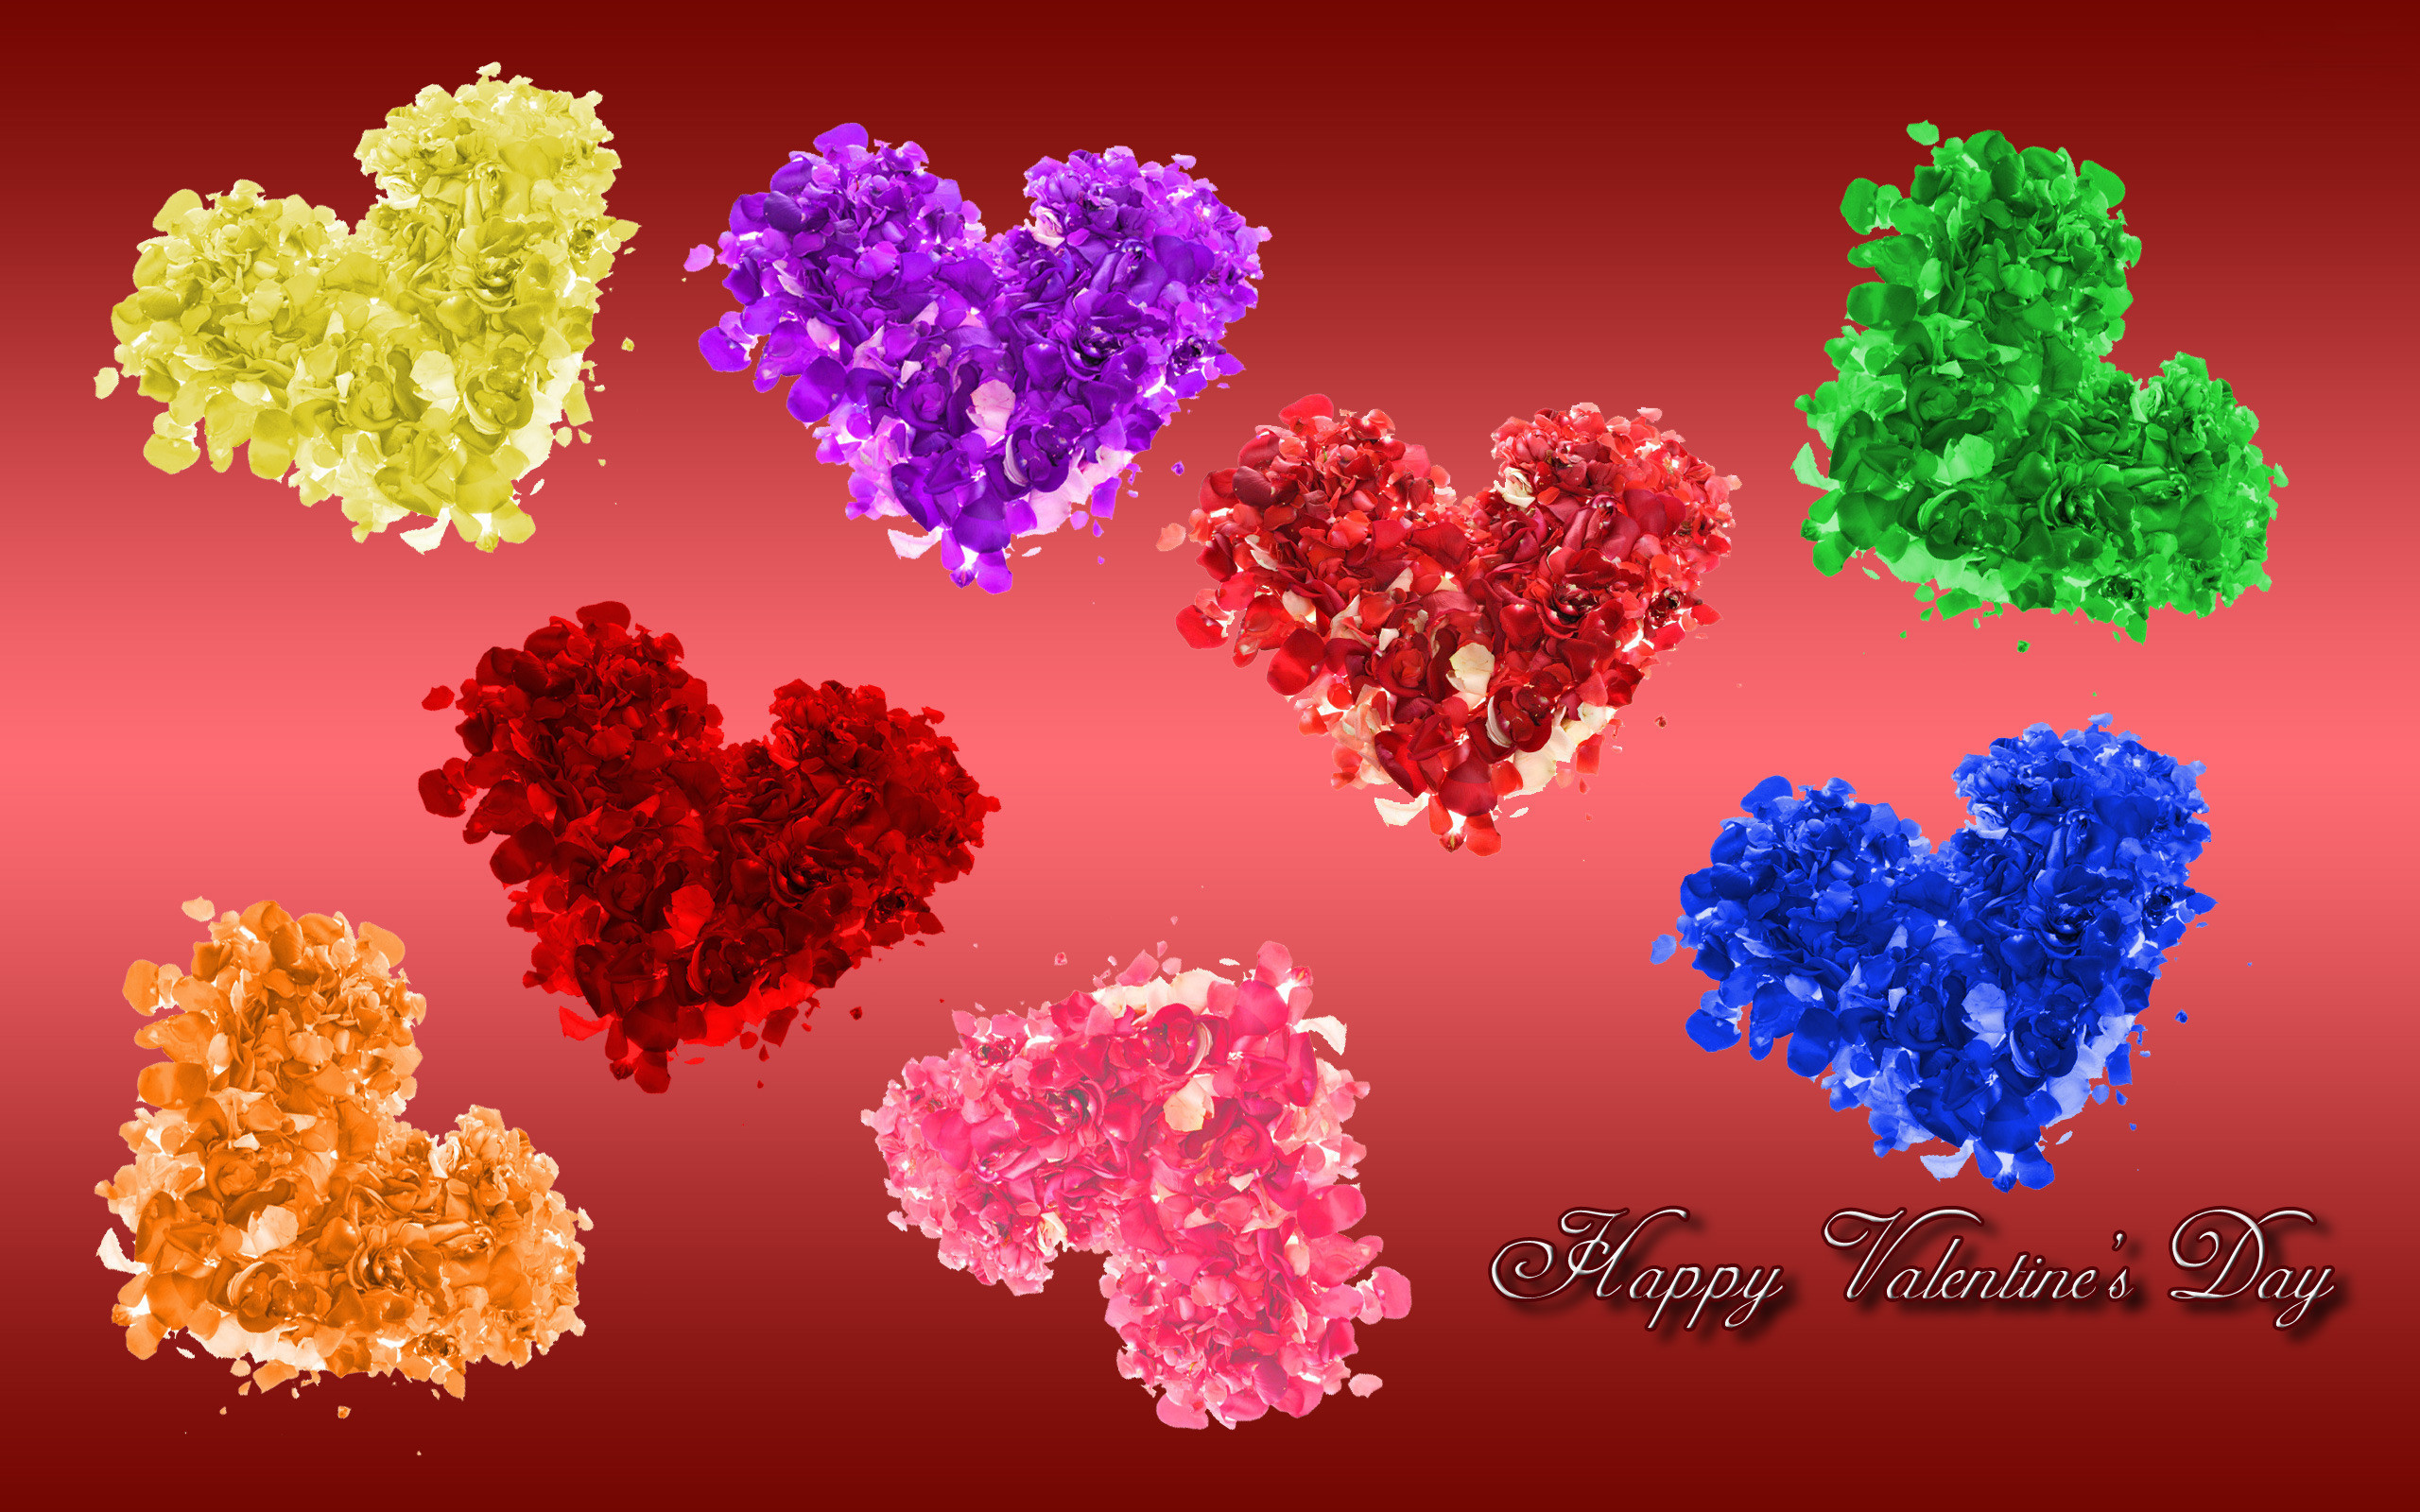 2560x1600 Valentines Day Colorful Wallpaper.